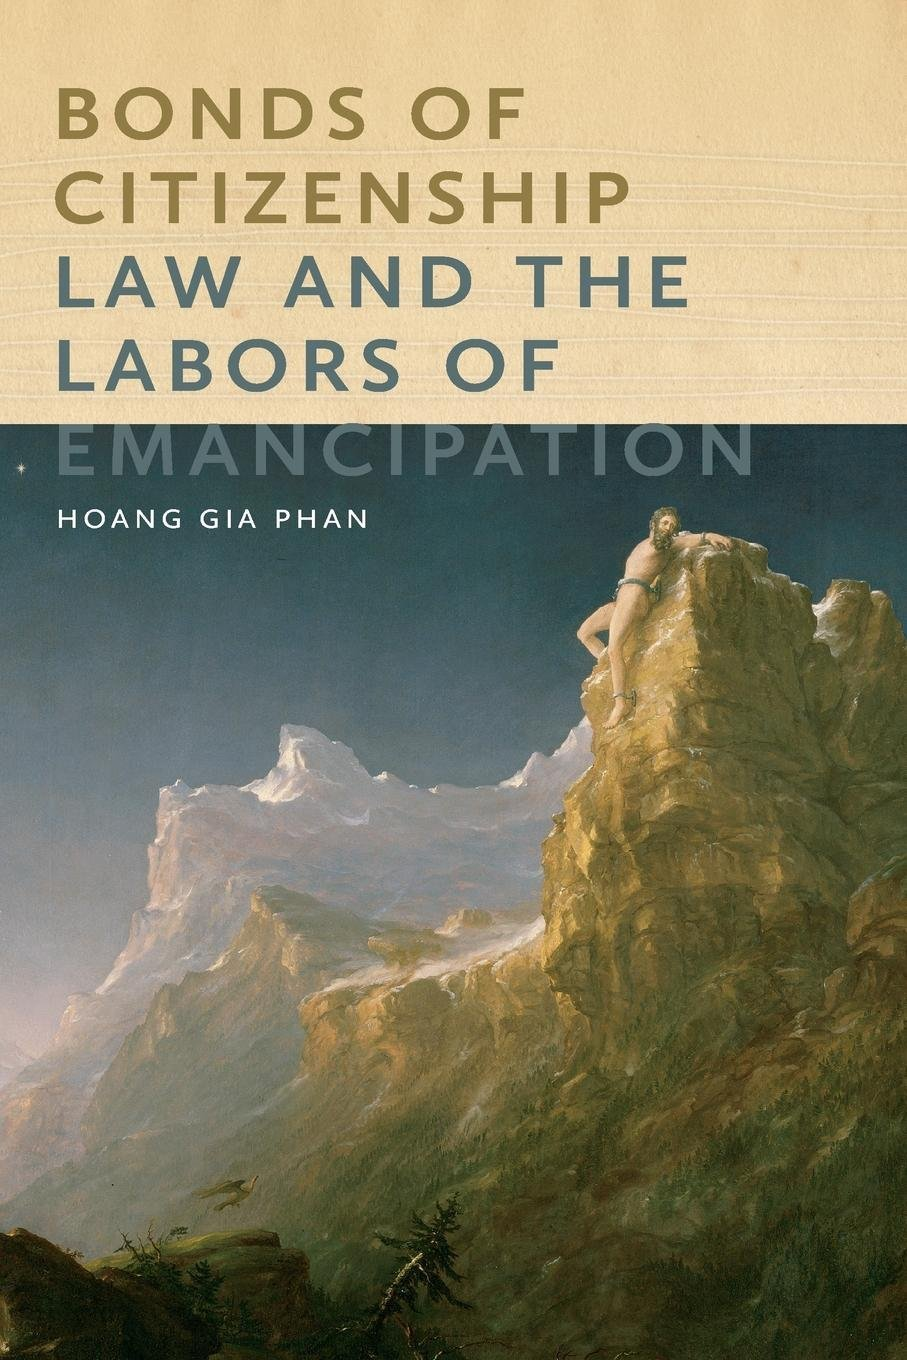 Bonds of Citizenship: Law and the Labors of Emancipation (America and the Long 19th Century) ebook